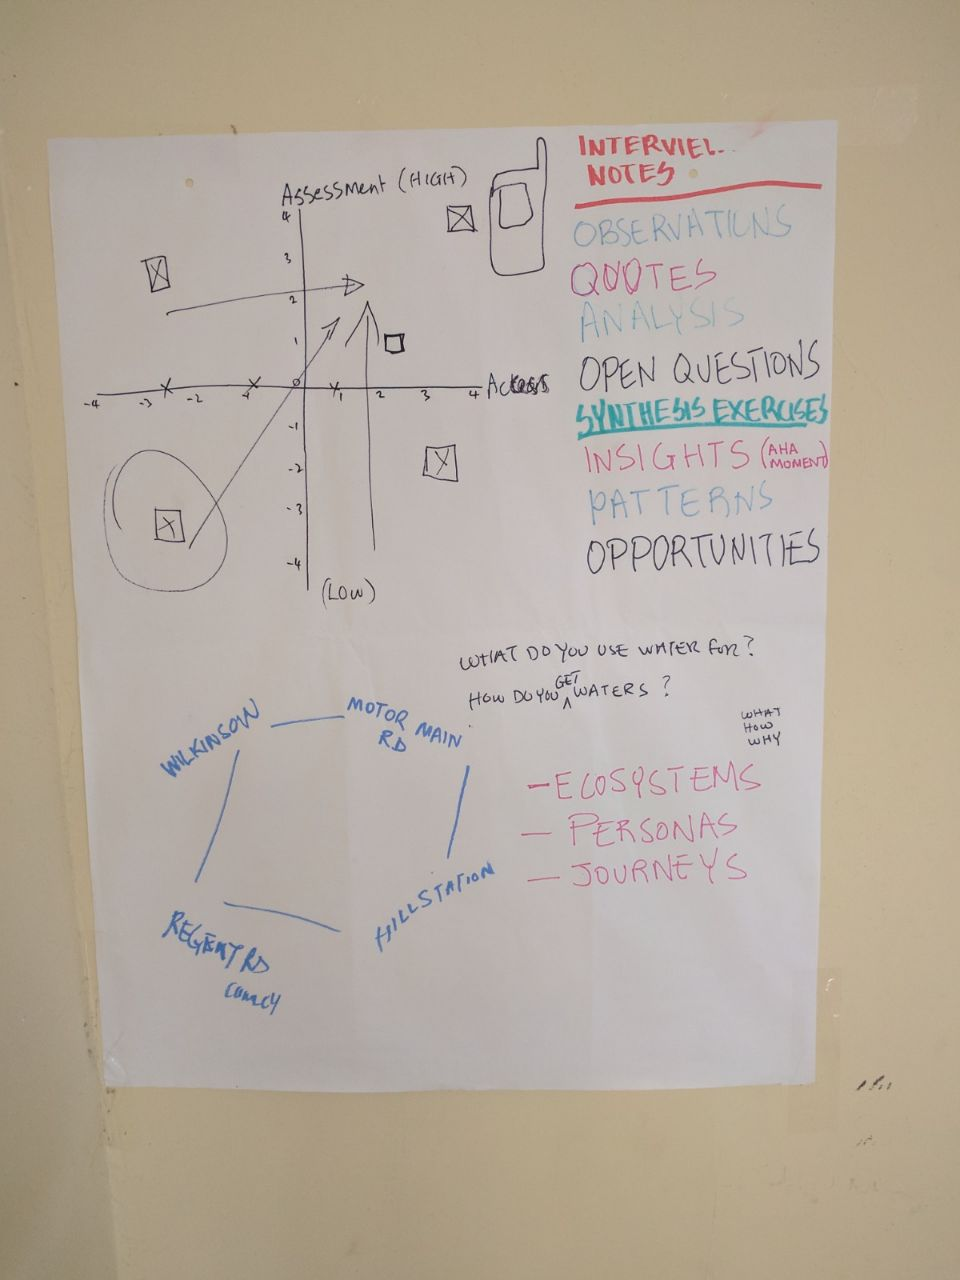 Opportunity Ideating Chart